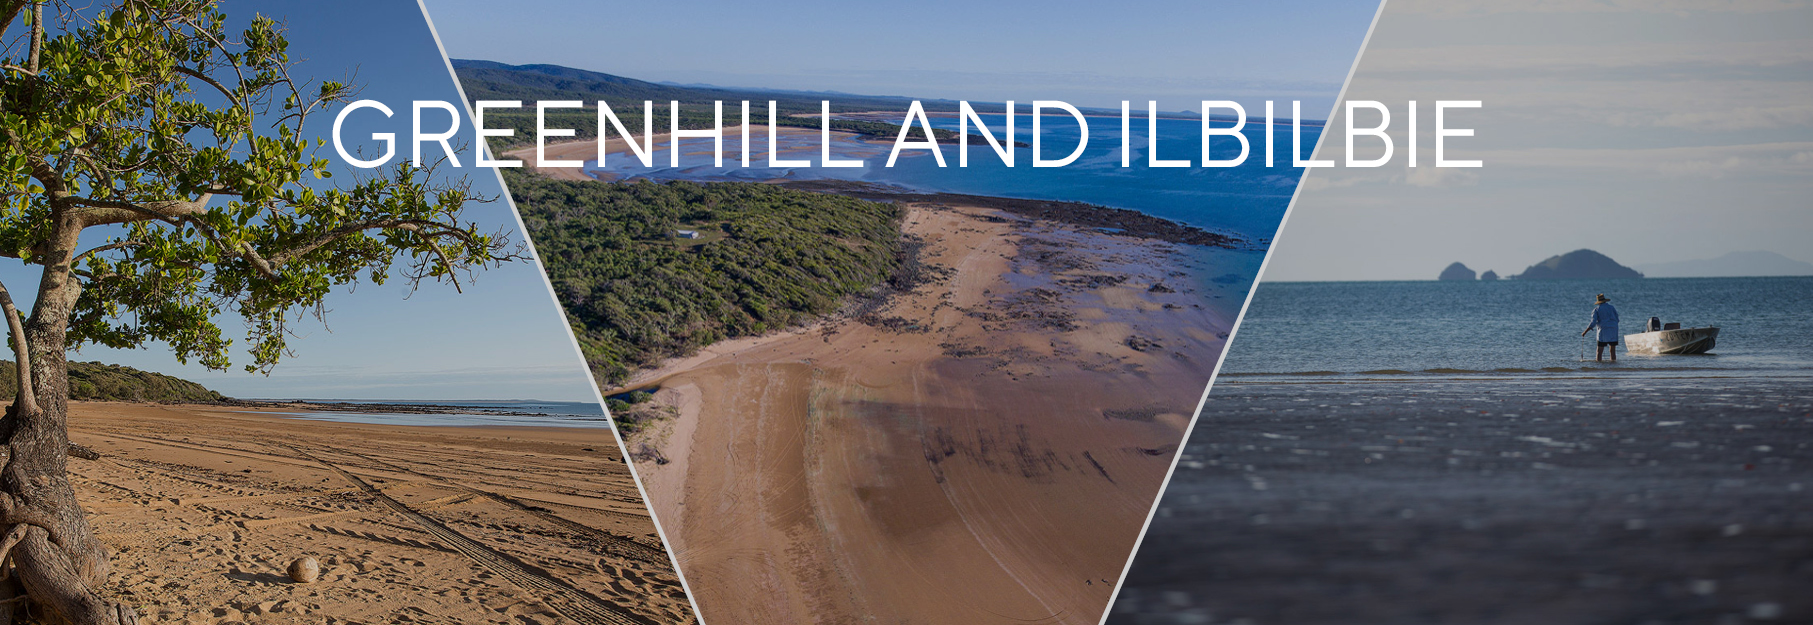 Greenhill and ilbilbie page banner